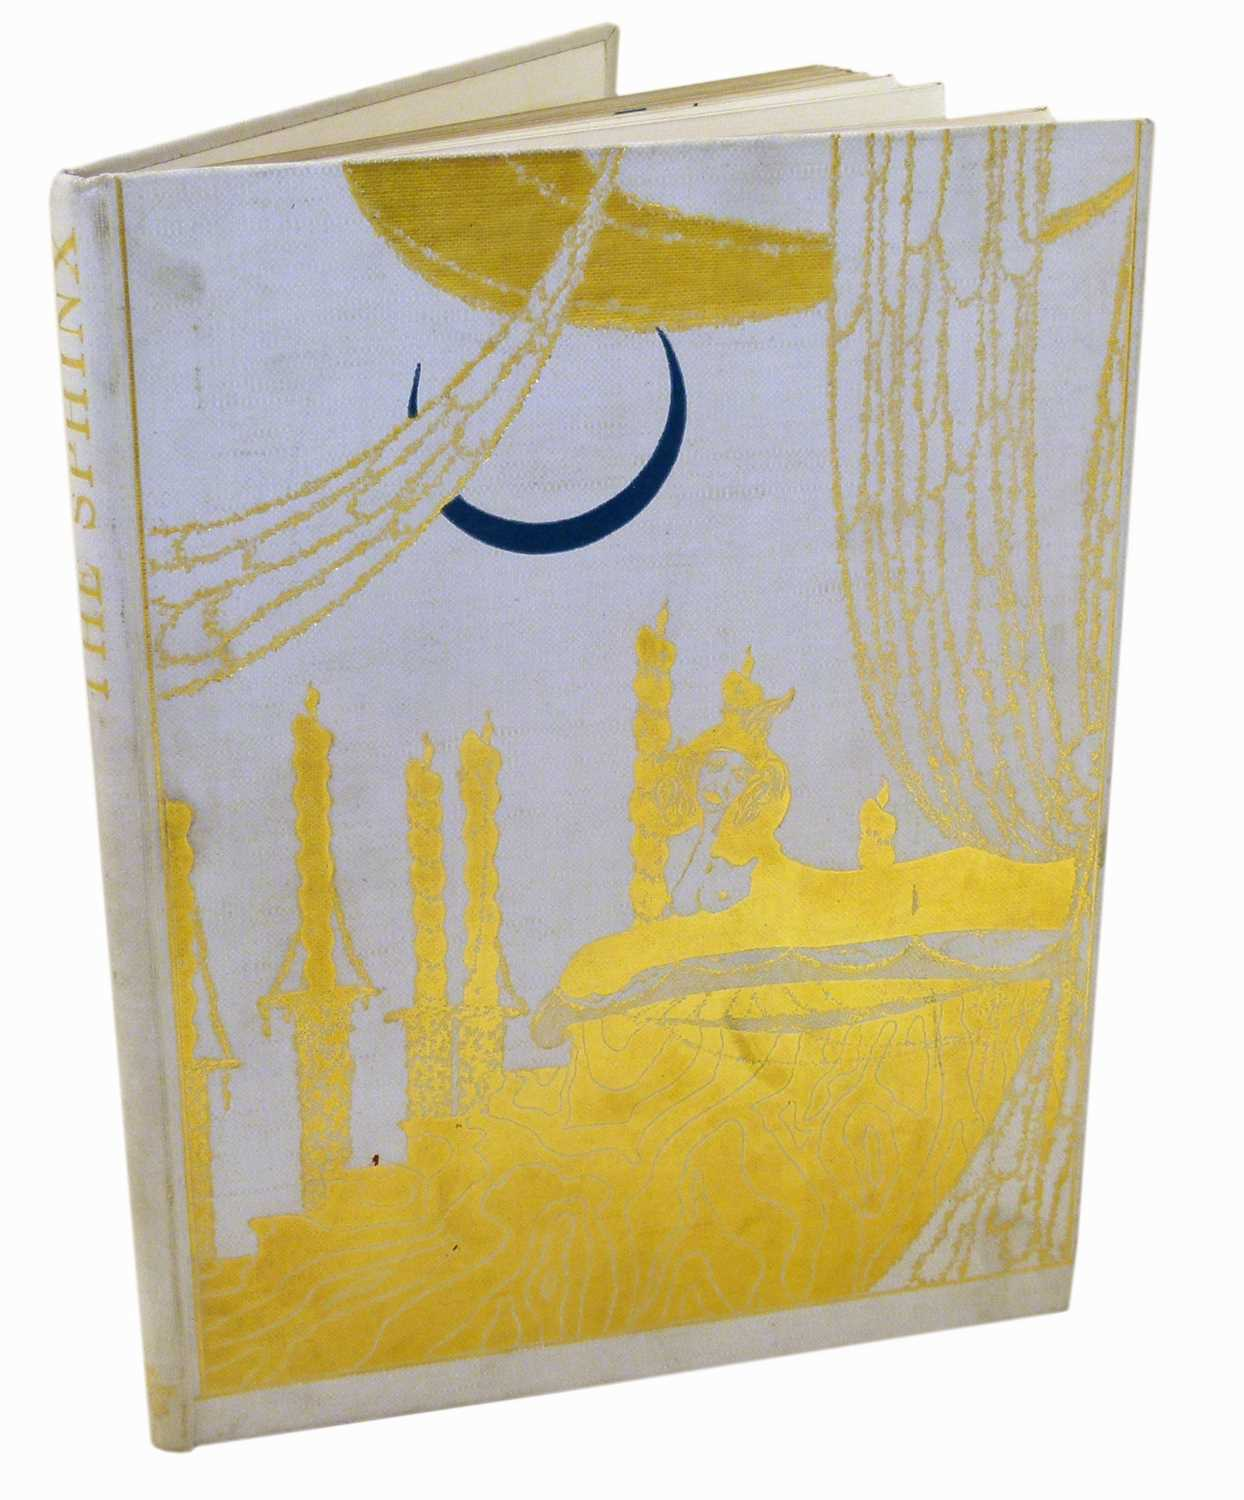 Lot 45 - Oscar Wilde 'The Sphinx' limited edition book.